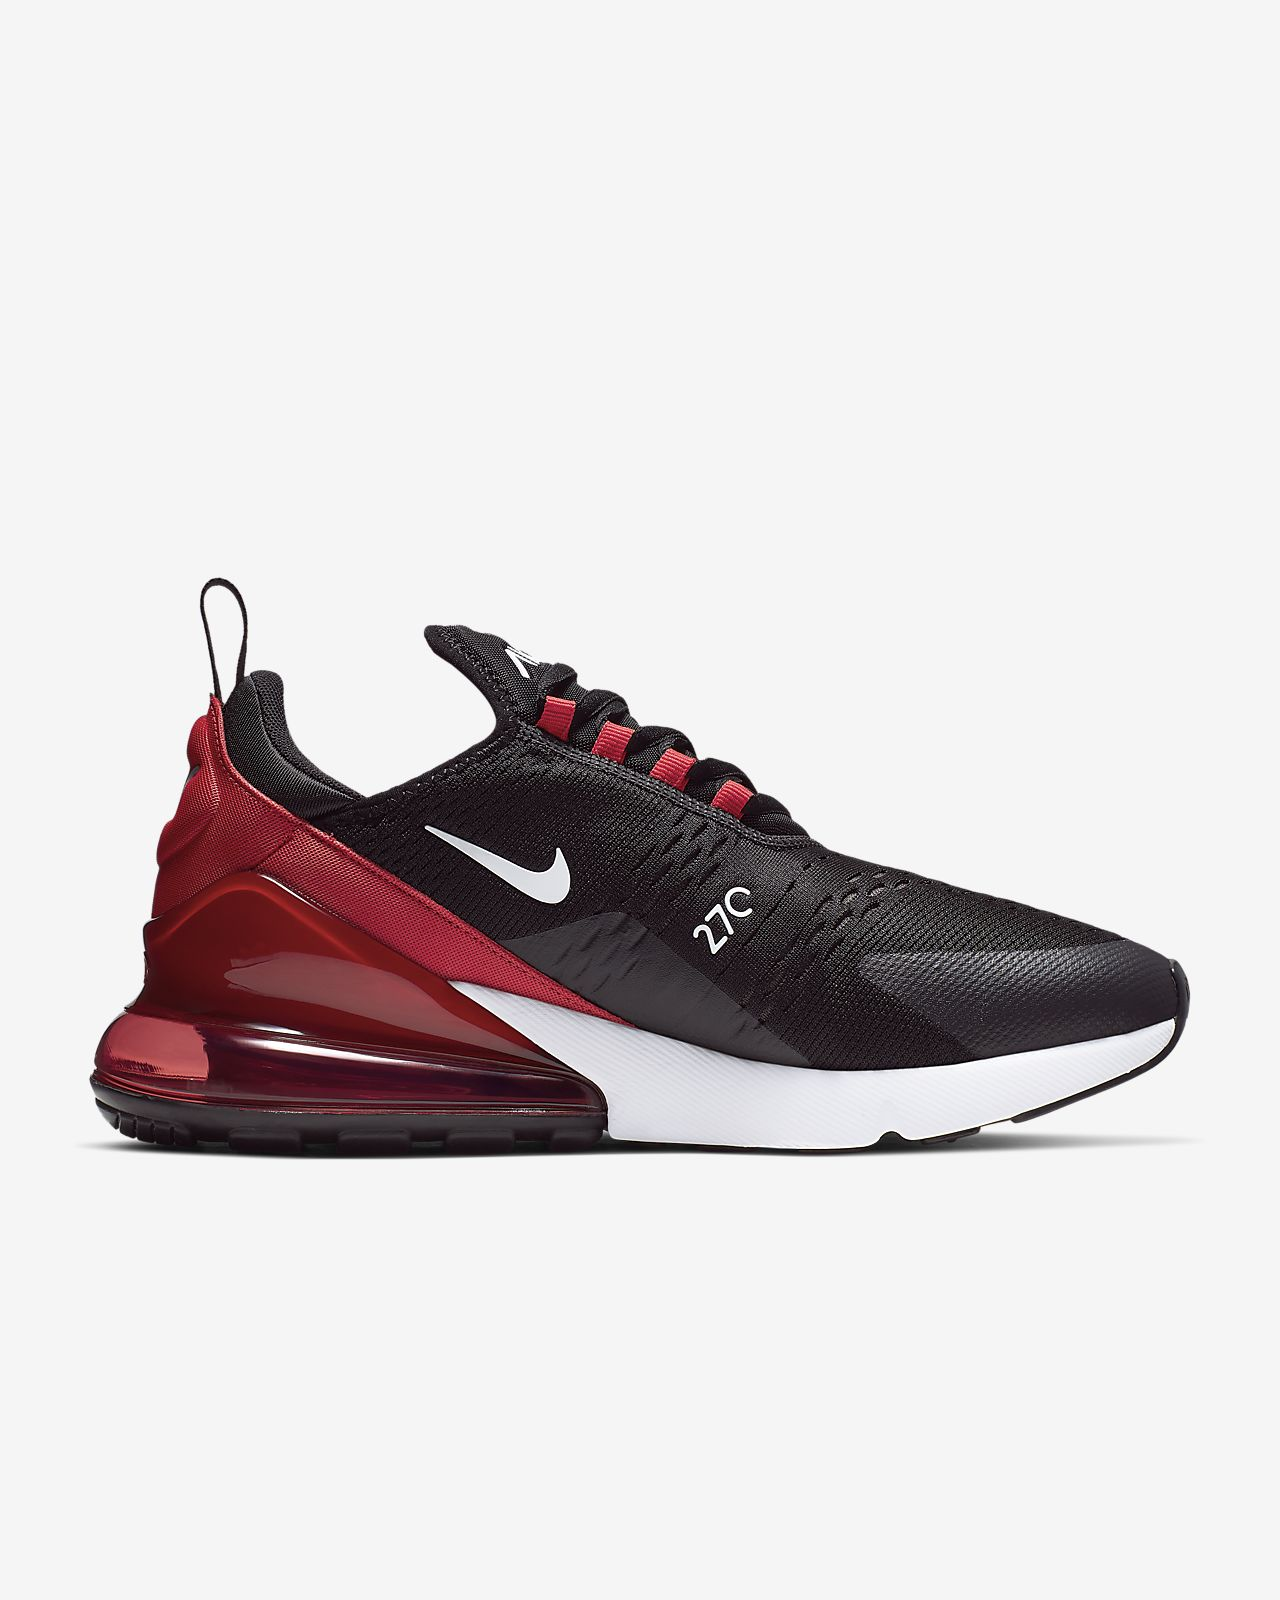 lowest price fdb74 d3785 ... Nike Air Max 270 Men s Shoe